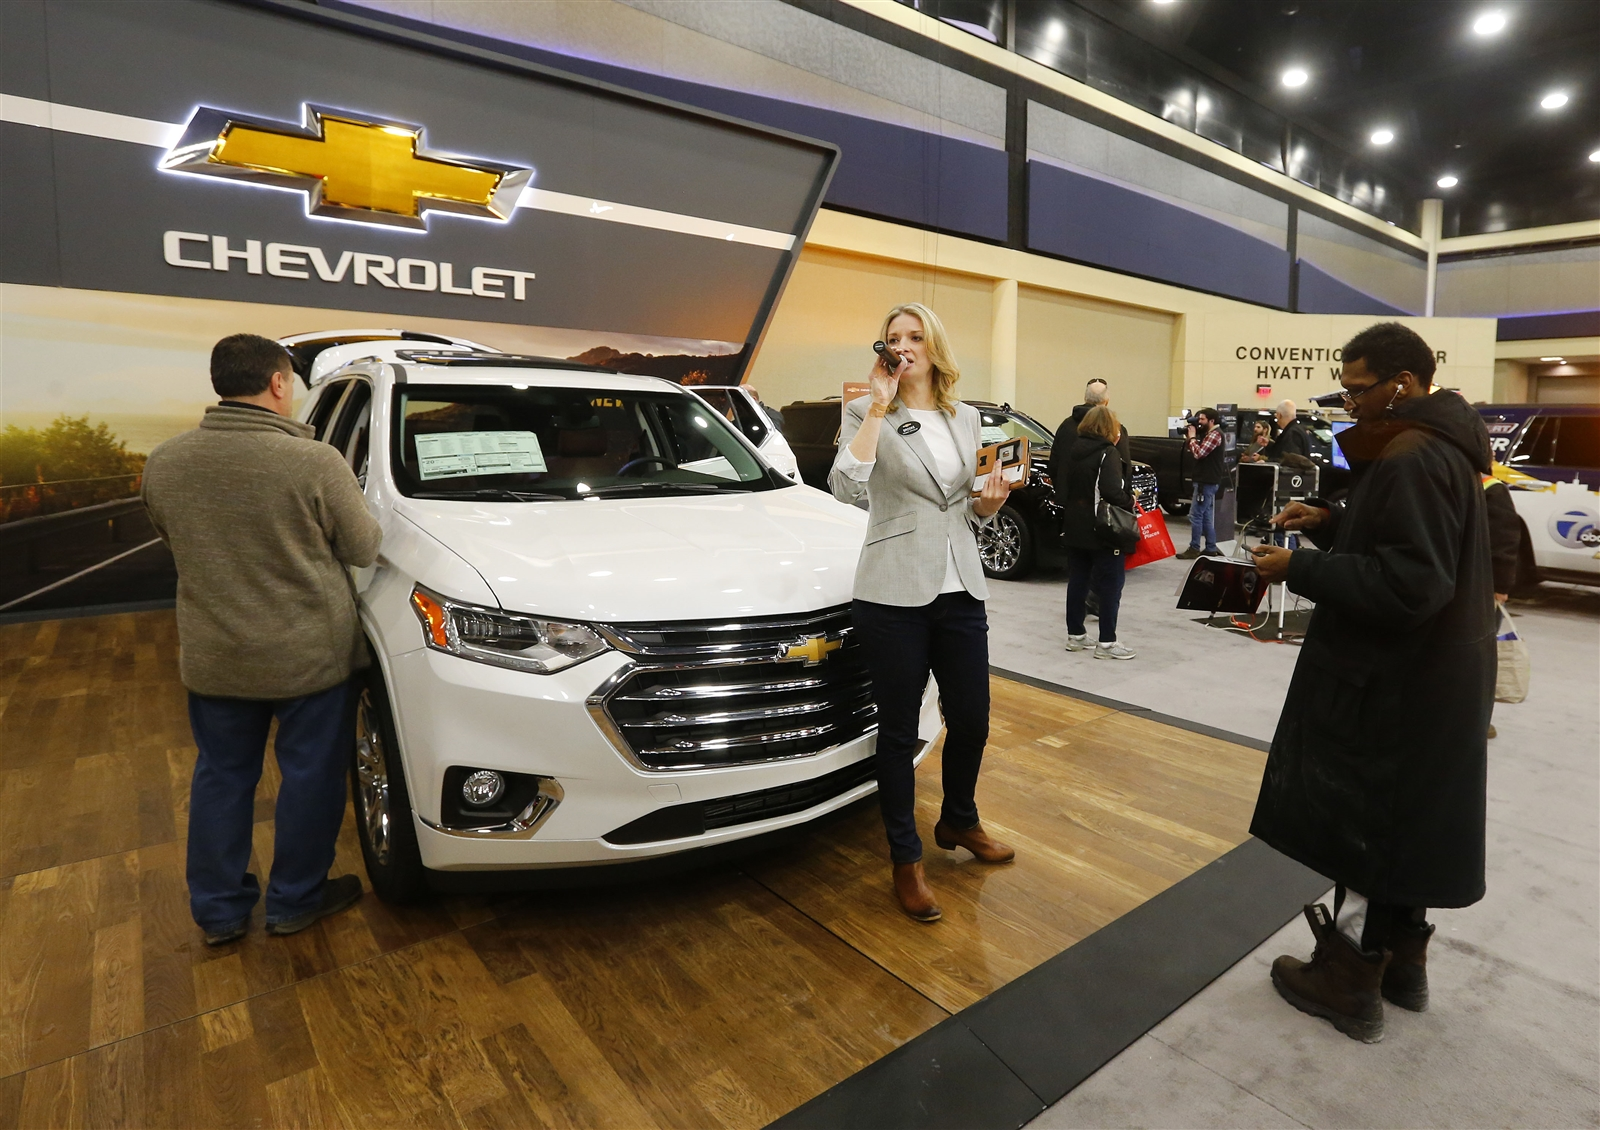 Product Specialist Brooke Evans talks about the Chevrolet cars on the floor at the Buffalo Auto Show at the Convention Center in Buffalo Thursday, February 8, 2018.